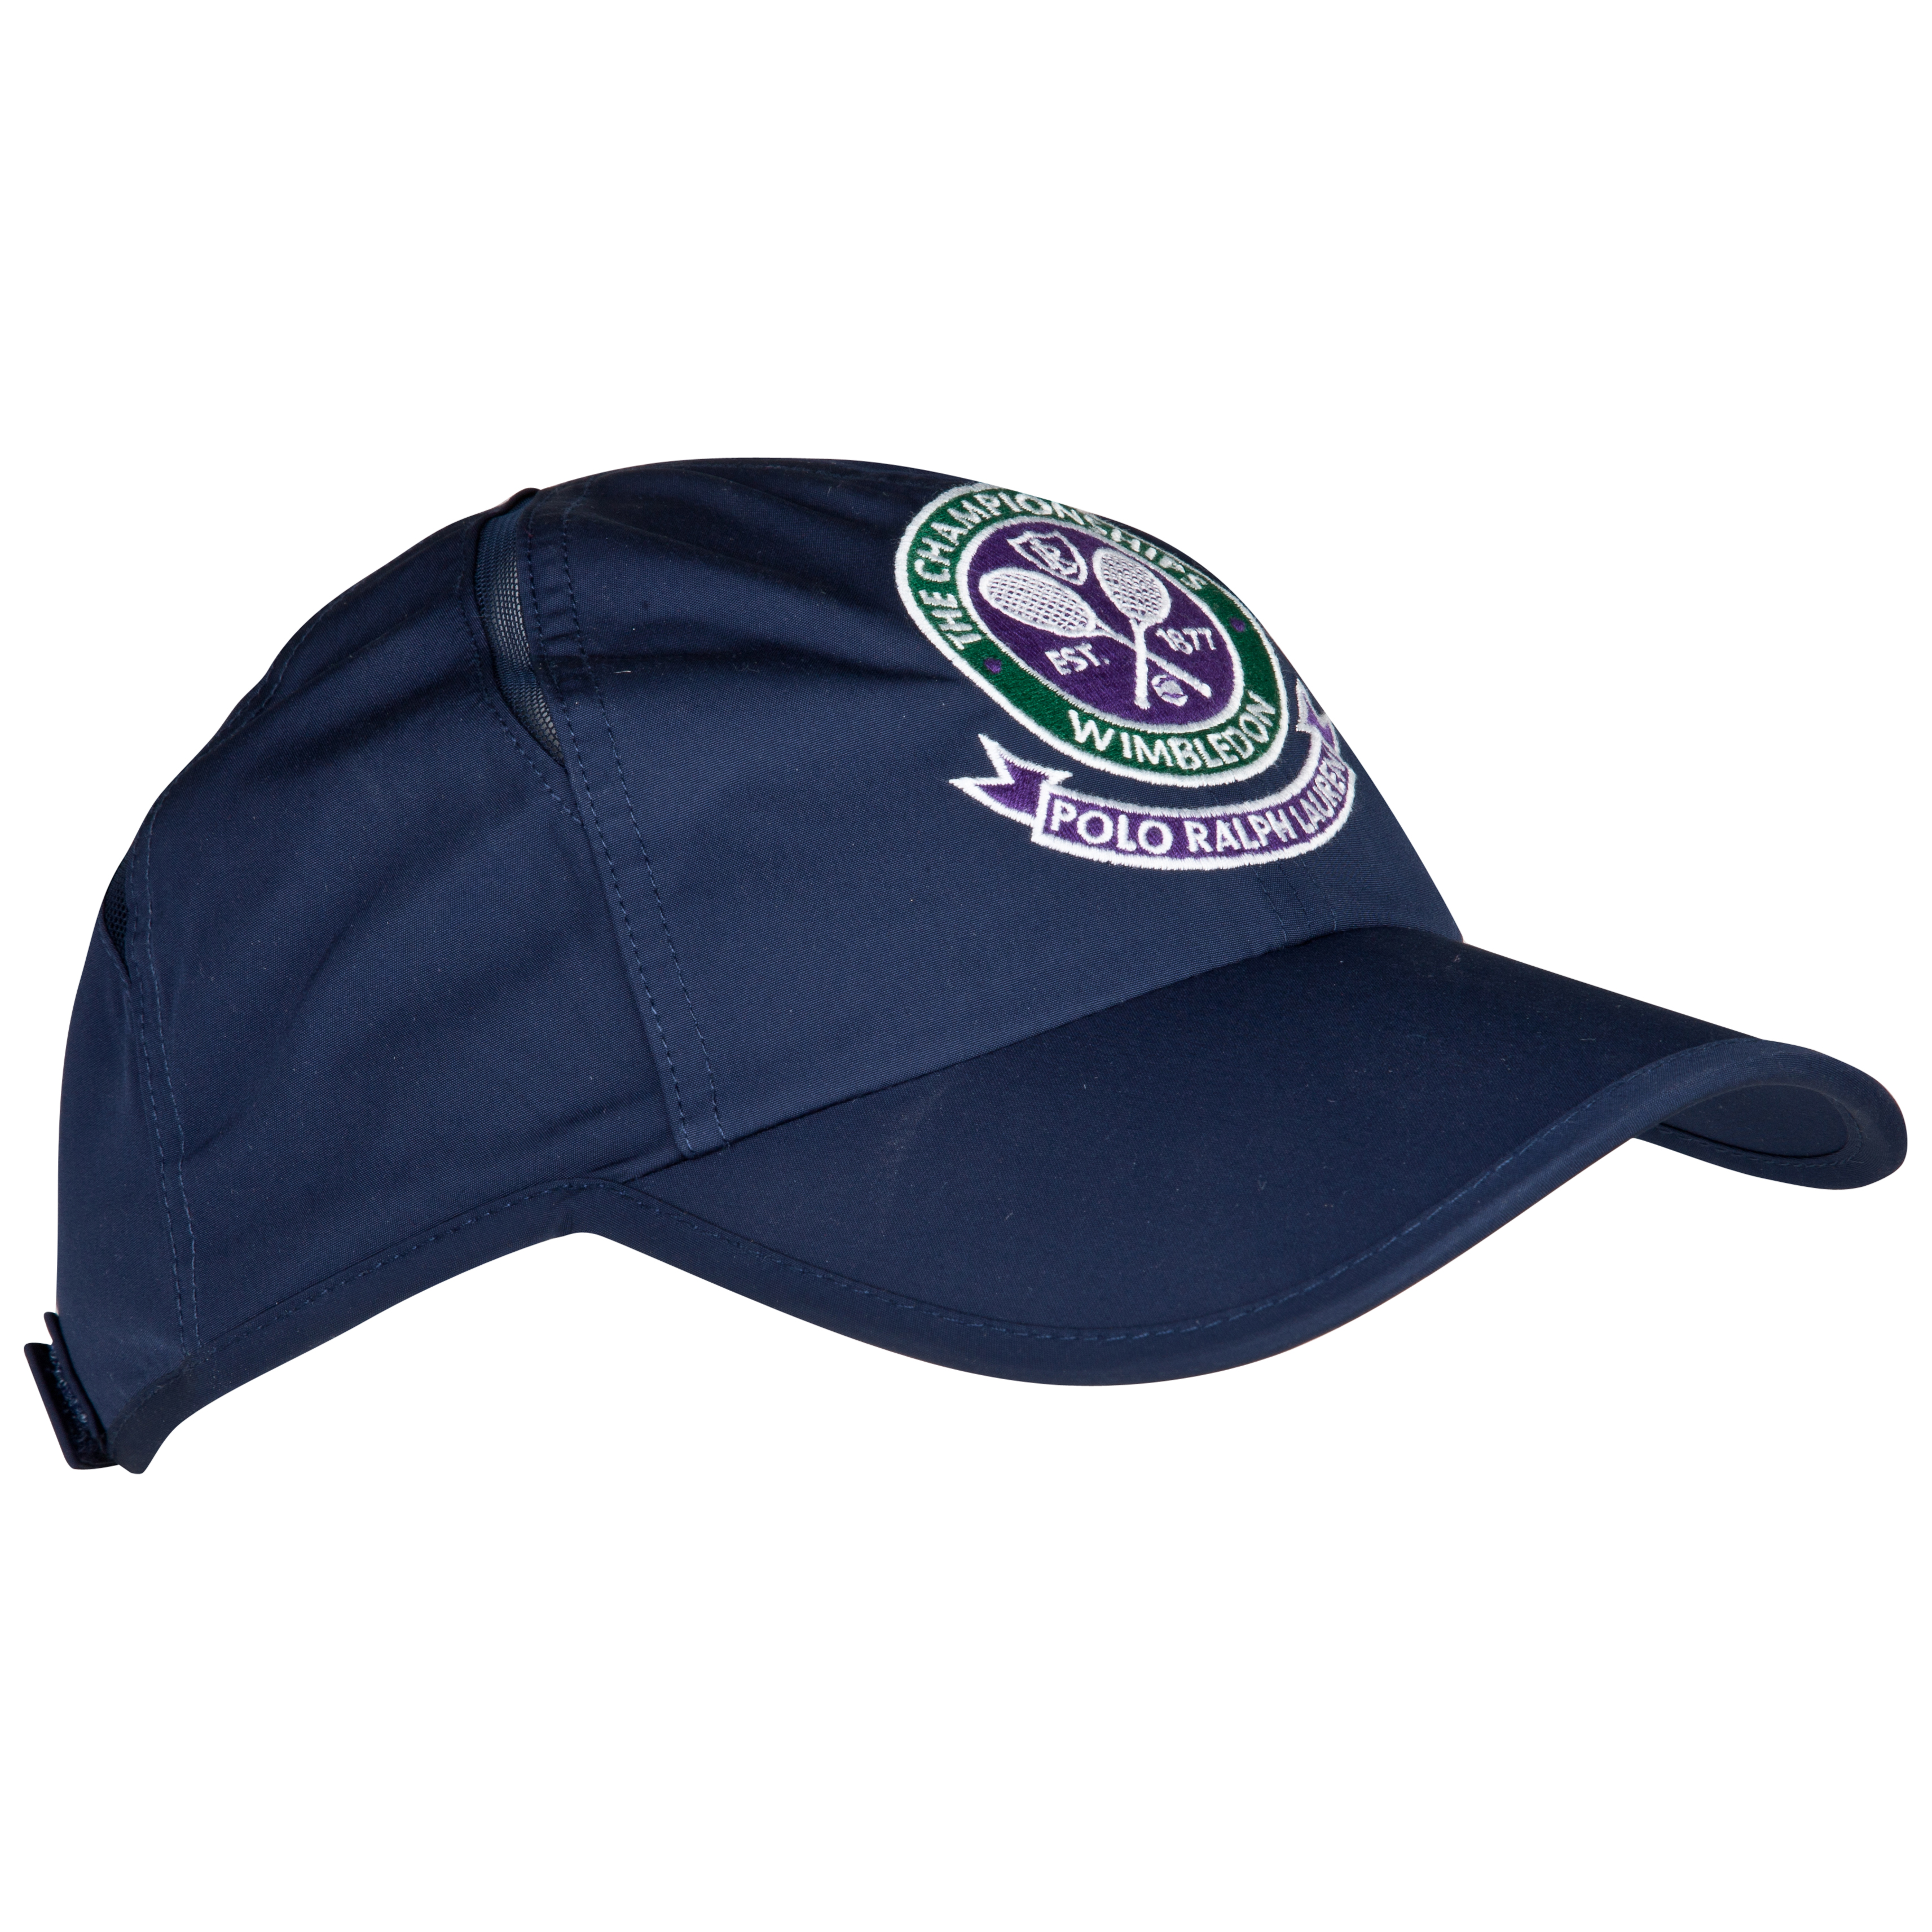 Polo Ralph Lauren Wimbledon Crosscourt Cap - French Navy